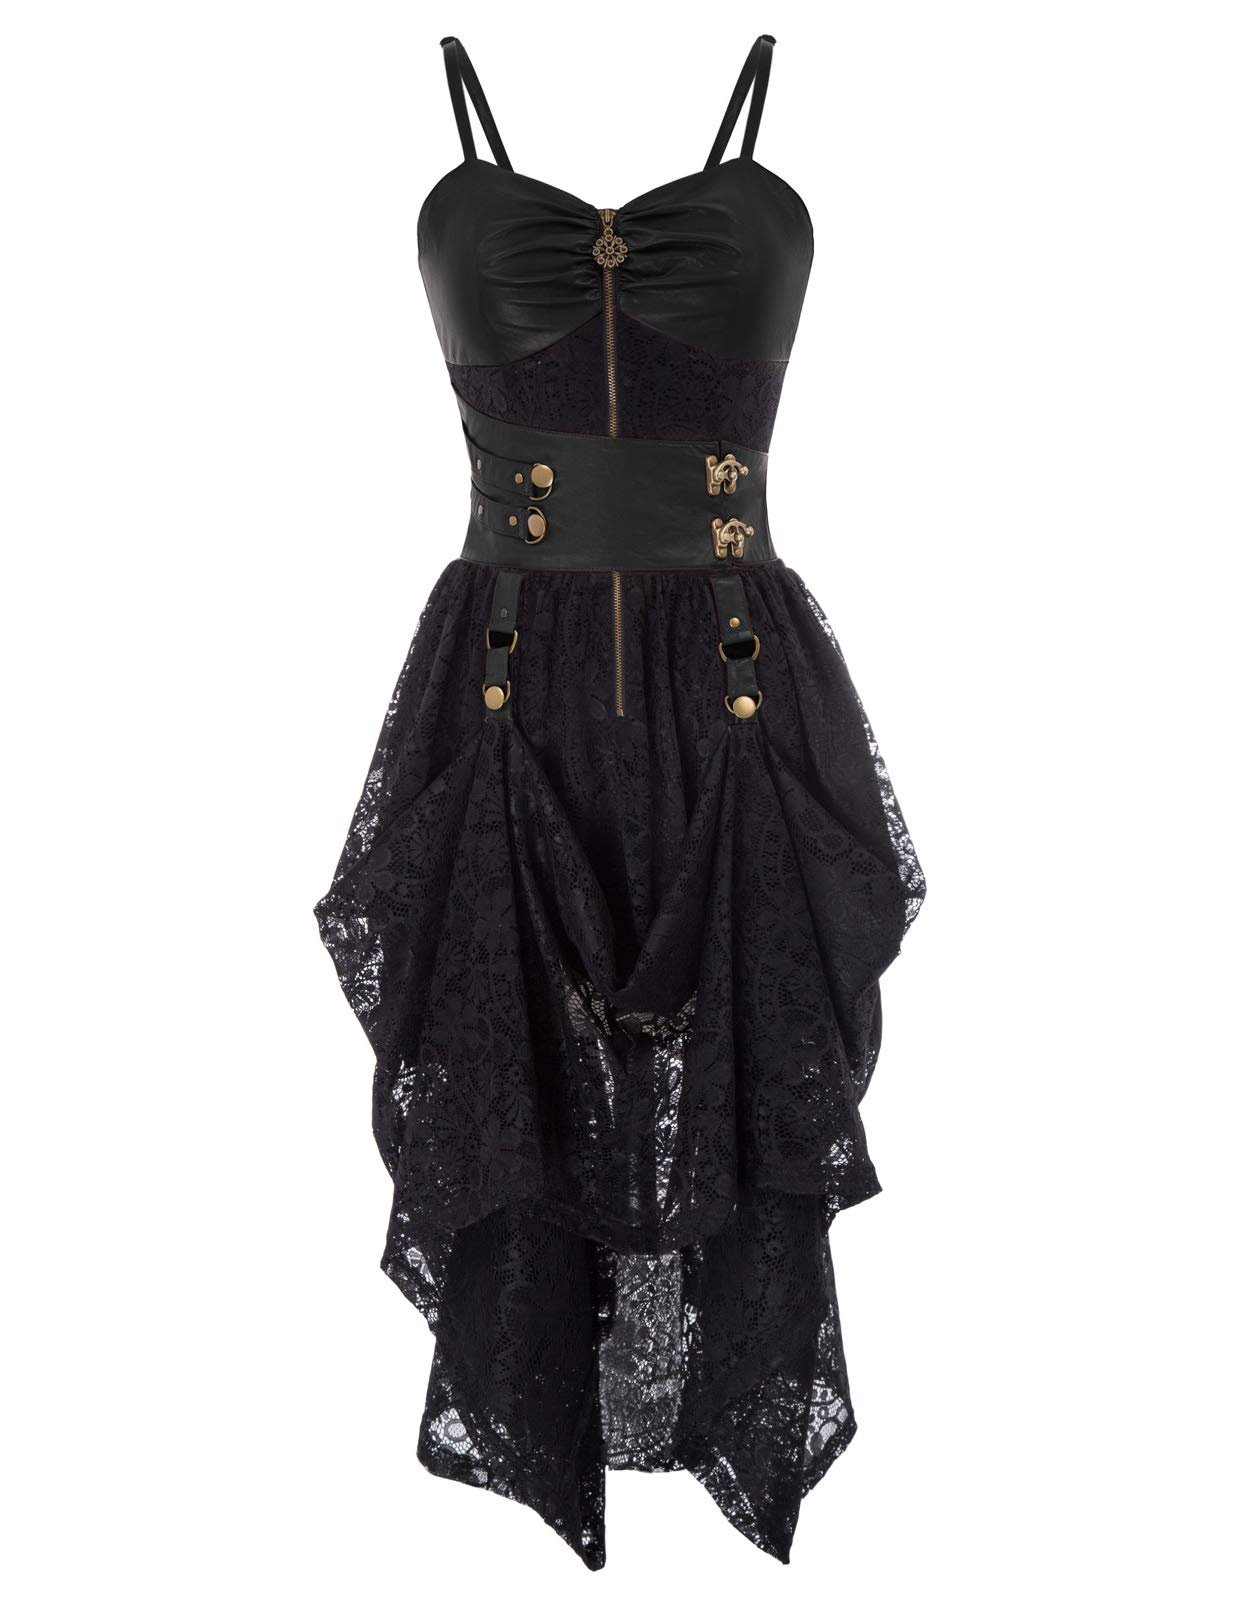 Womens Gothic Dress Steampunk Faux Leather Decorated High-Low Hem Lace Dresses 3